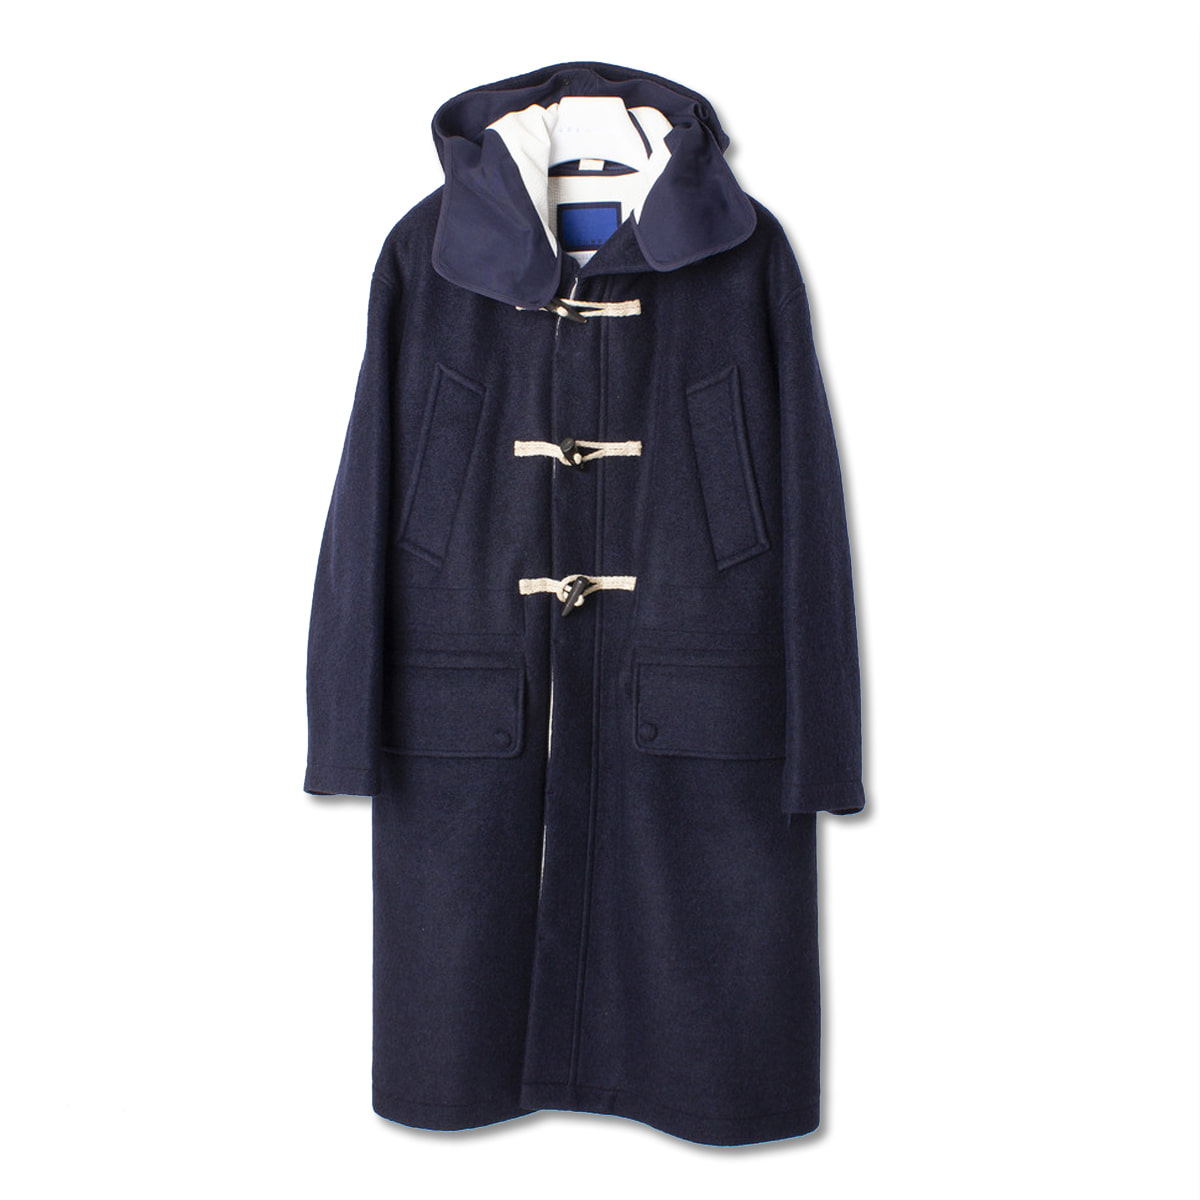 [DOCUMENT] THE DOCUMENT DUFFLE COAT 'NAVY'